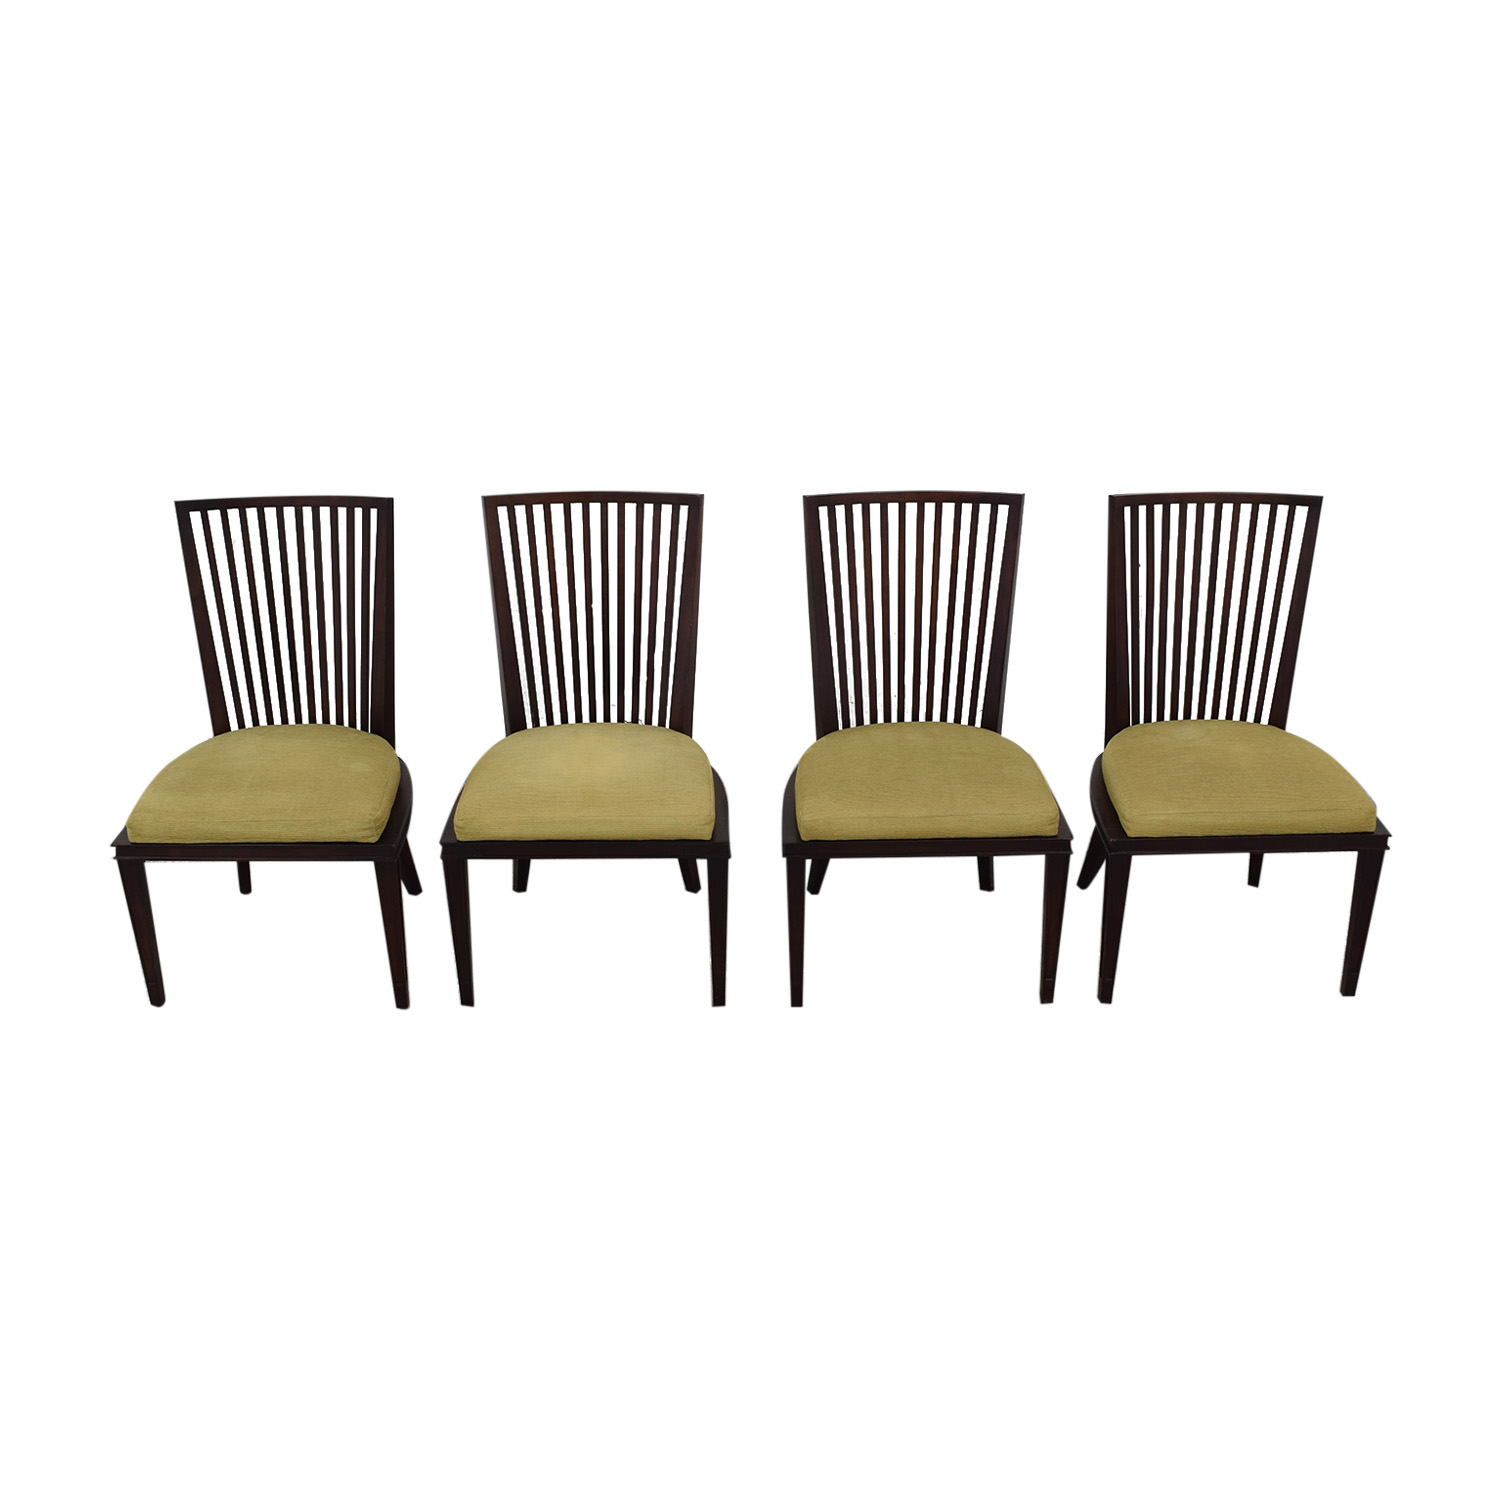 Strange 79 Off Baker Furniture Barbara Barry By Baker Dining Room Chairs Chairs Ibusinesslaw Wood Chair Design Ideas Ibusinesslaworg